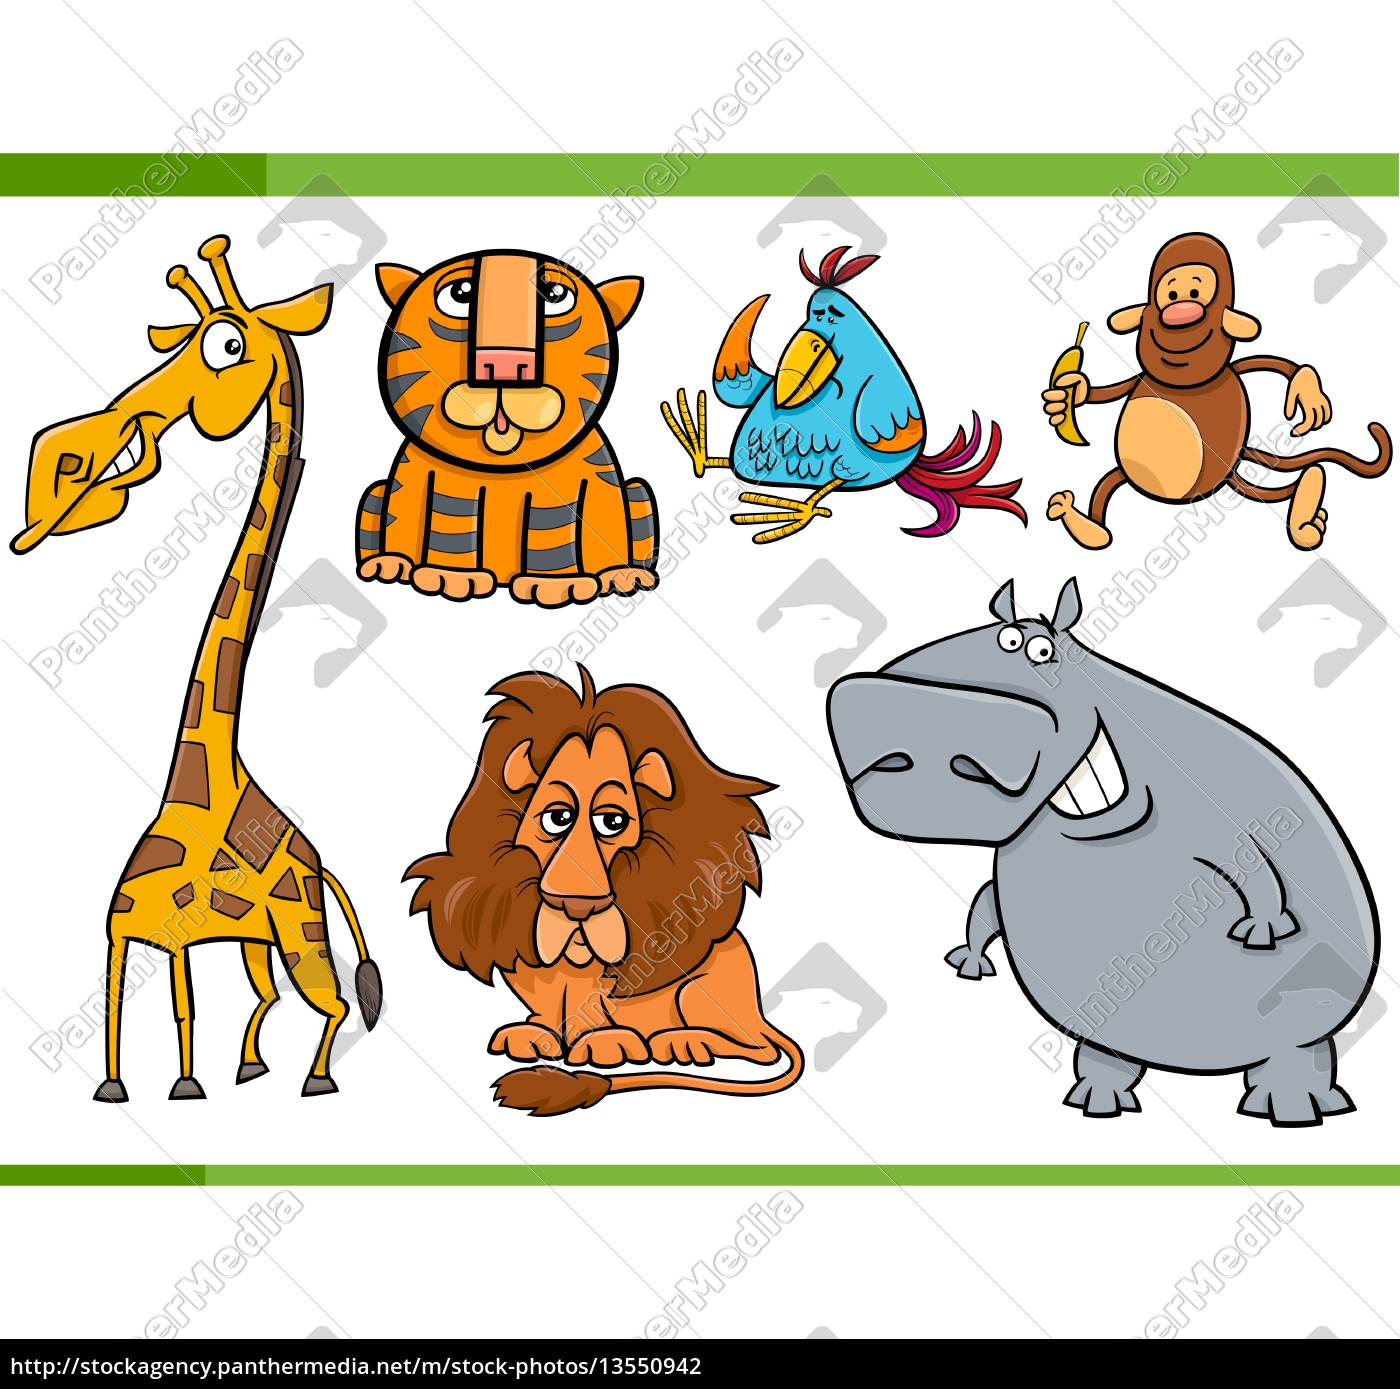 tiere, cartoon-figuren, set - 13550942